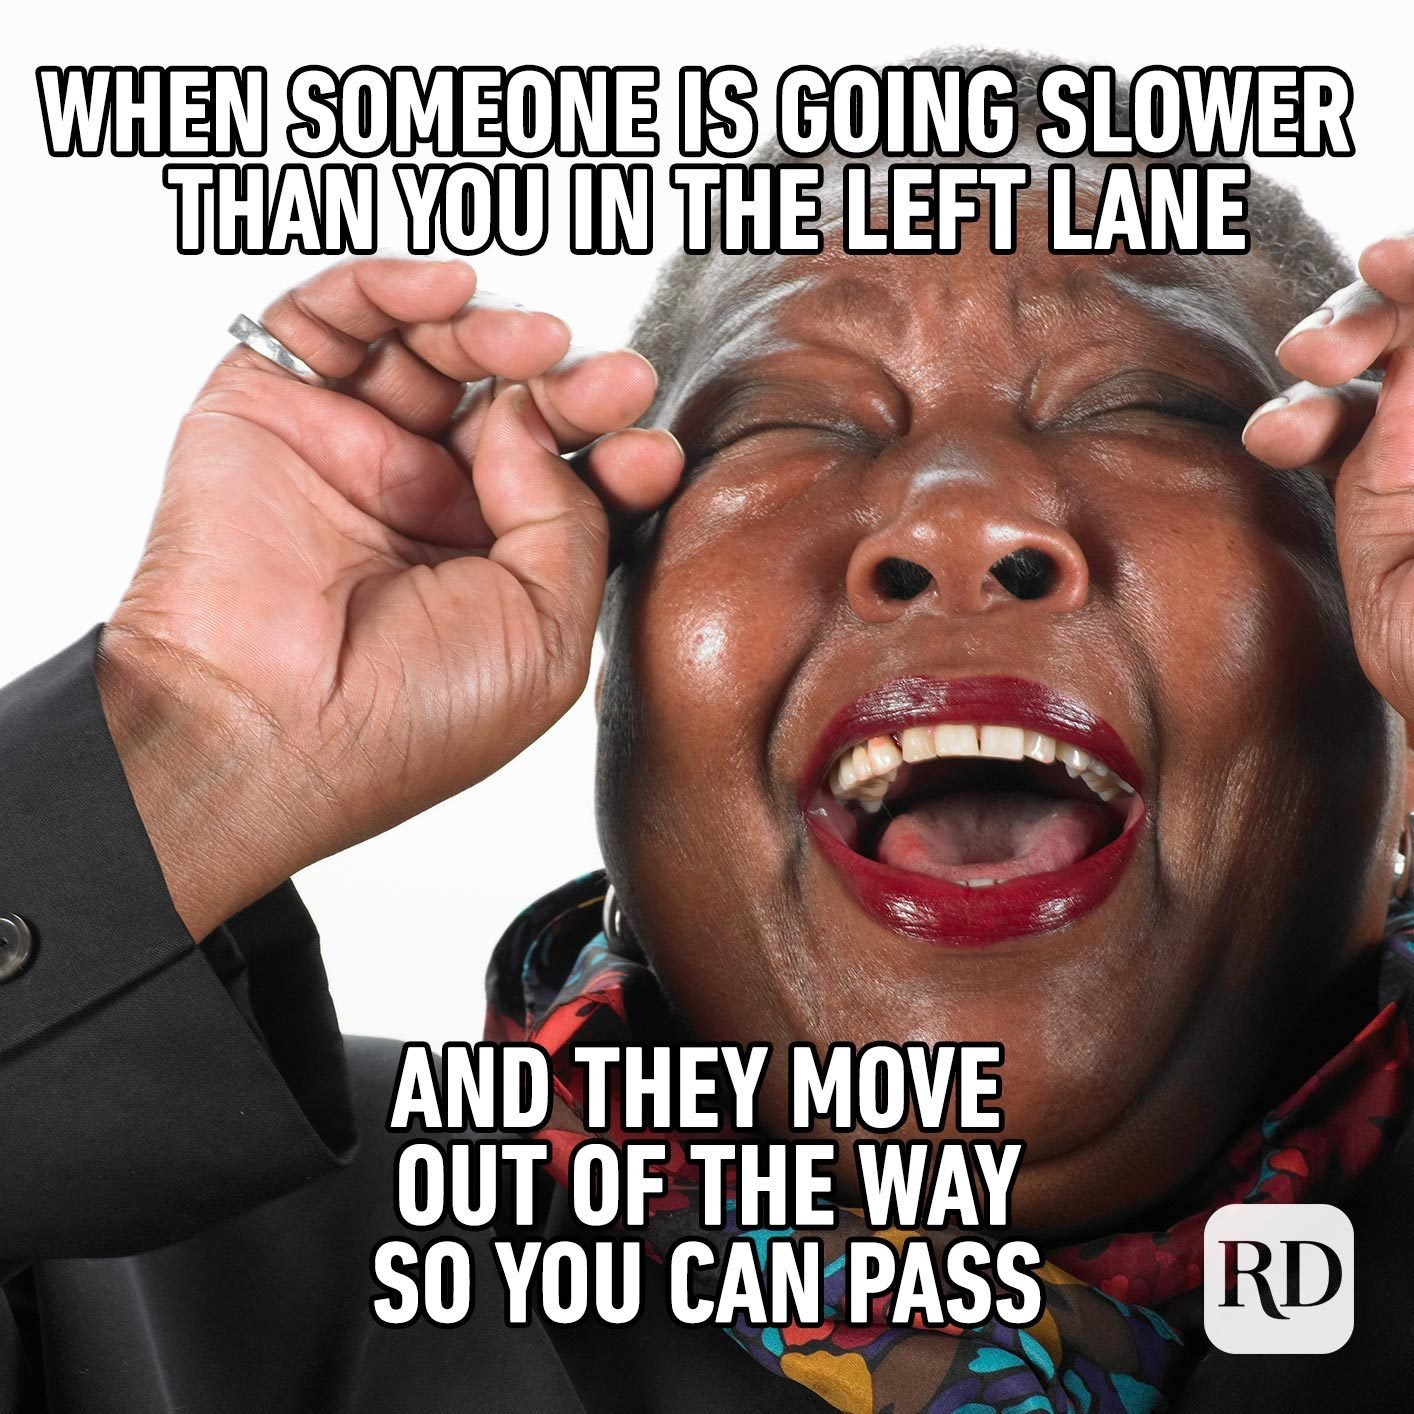 woman crying with joy. Meme text: When someone is going slower than you in the left lane and they move out of the way so you can pass